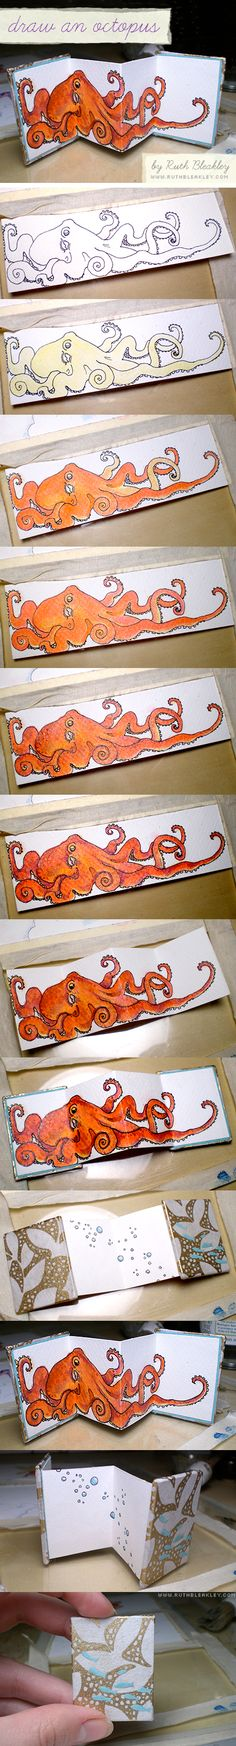 Octopus Drawing DIY and Mini Accordion Book Tutorial by @RuthBleakley